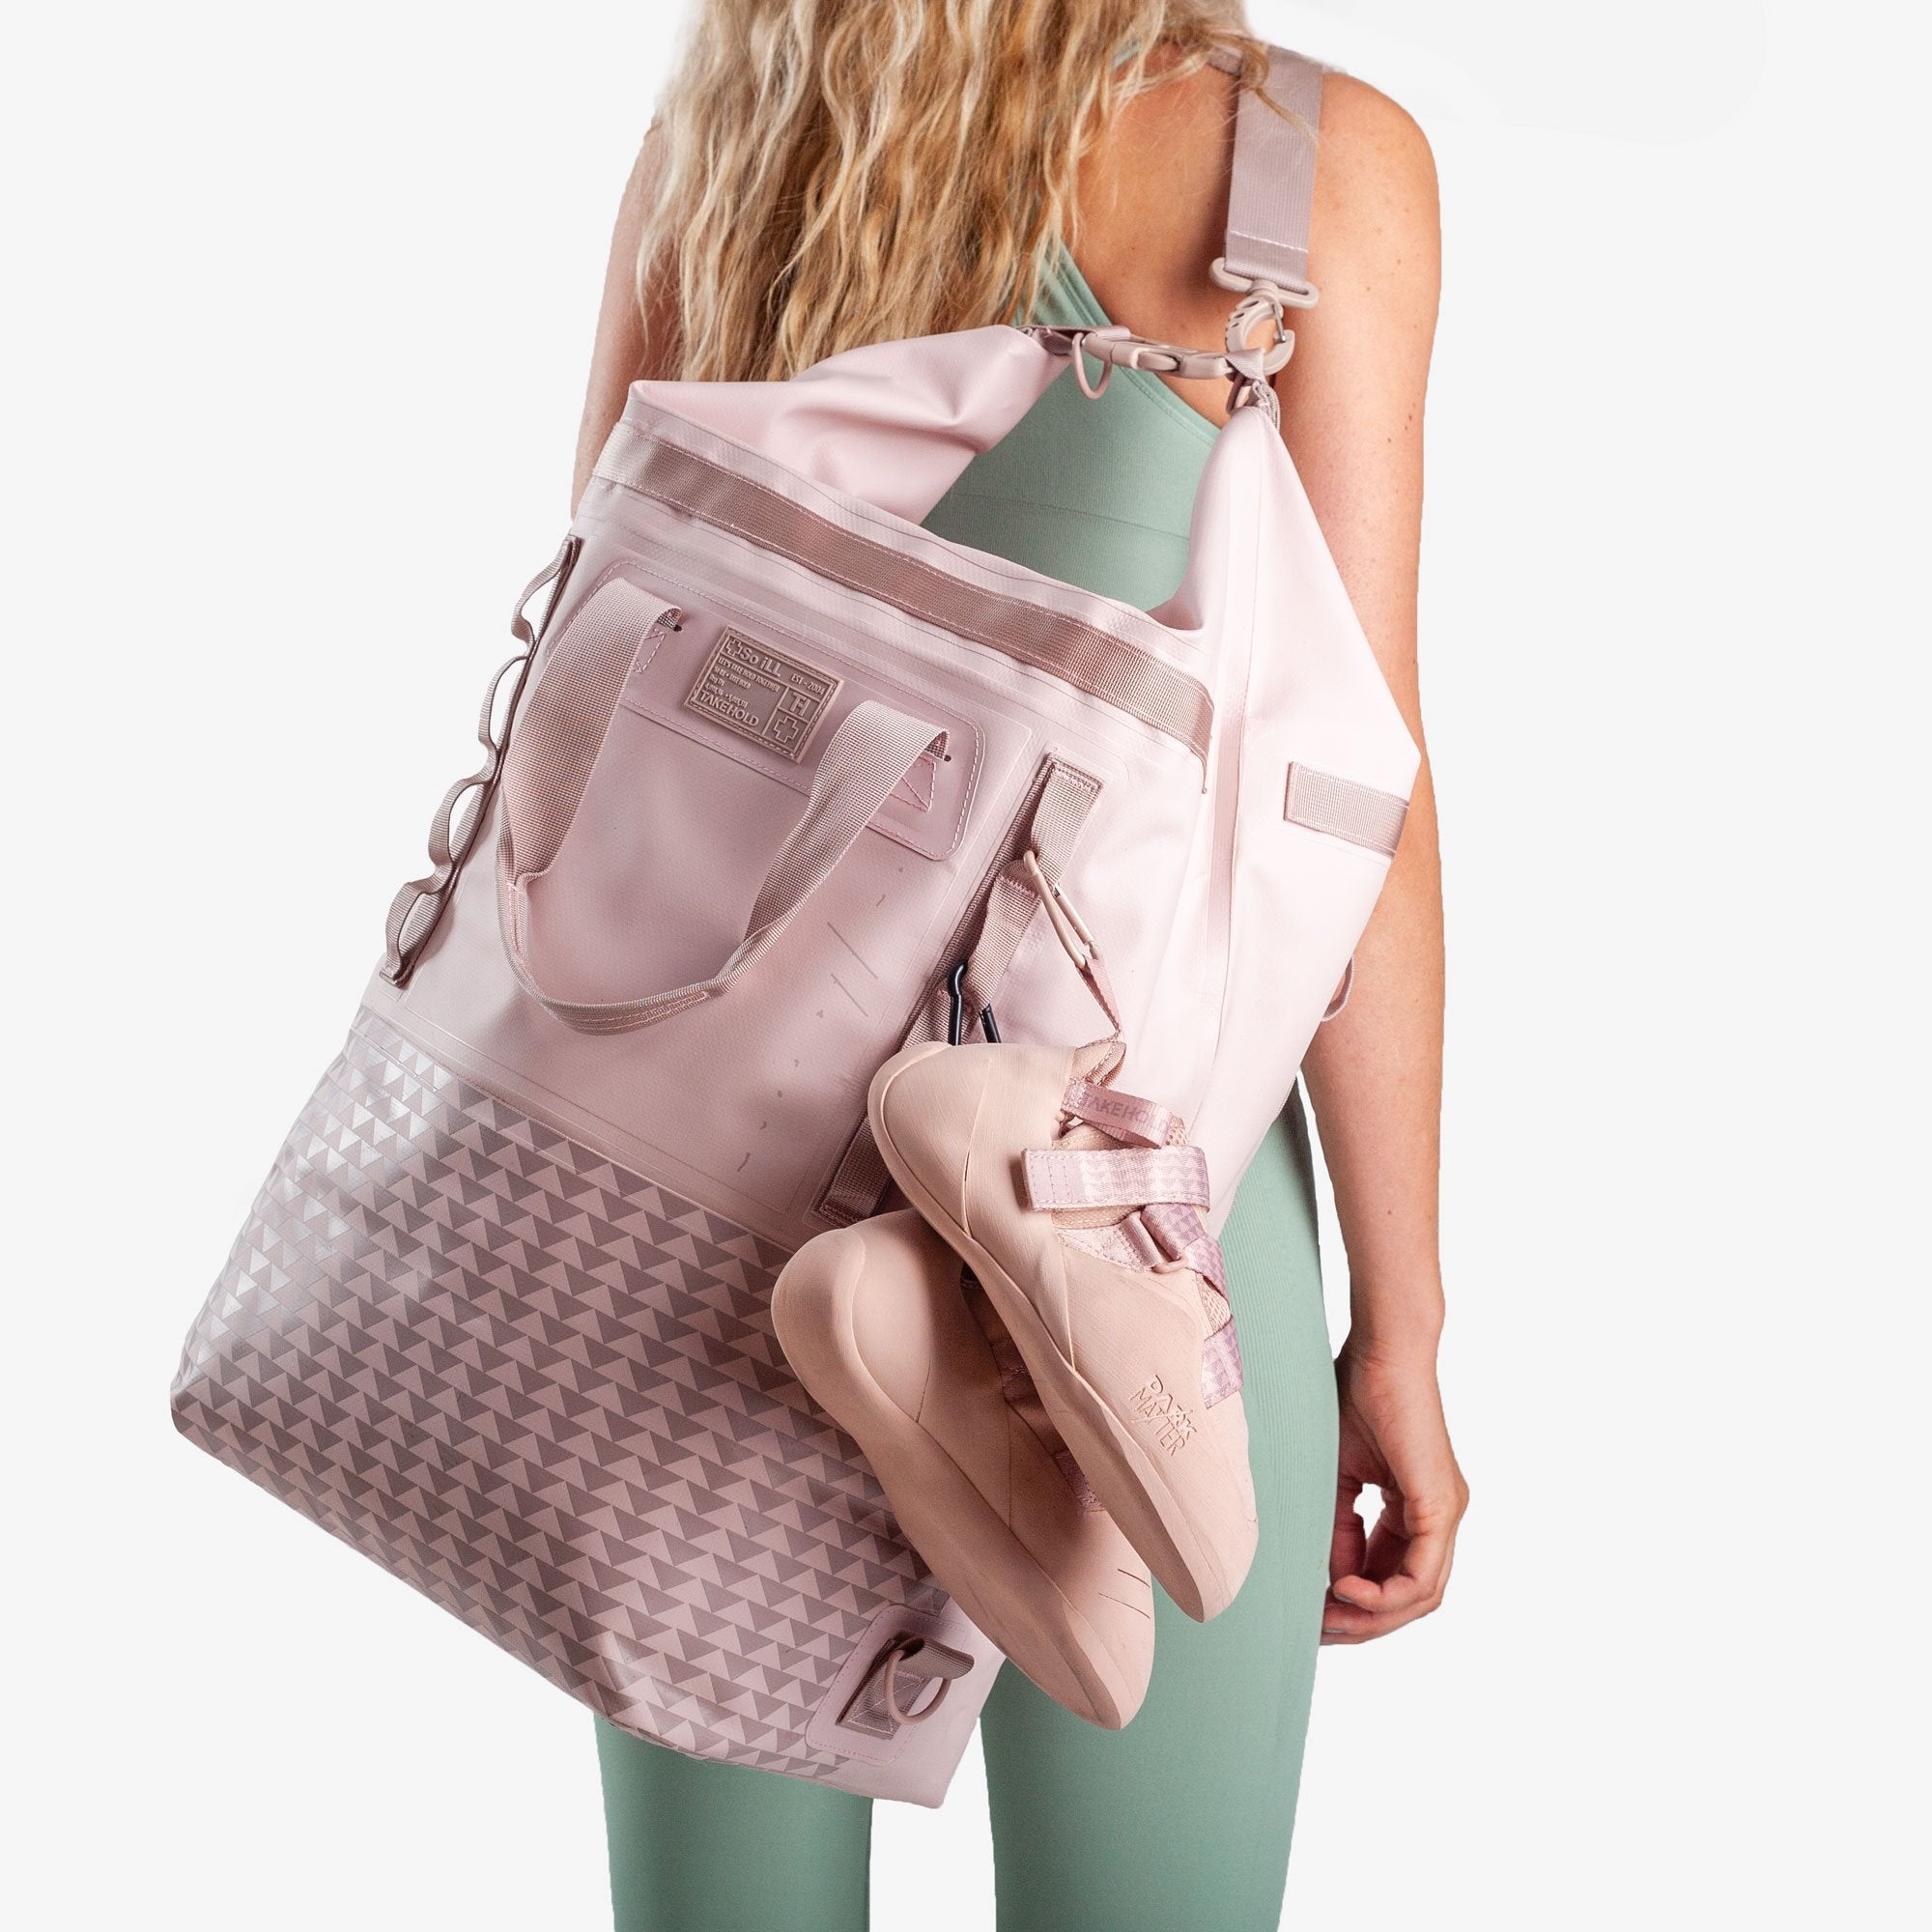 Model carrying So iLL On the Roam Dirt Bag 45L in Pink over the shoulder